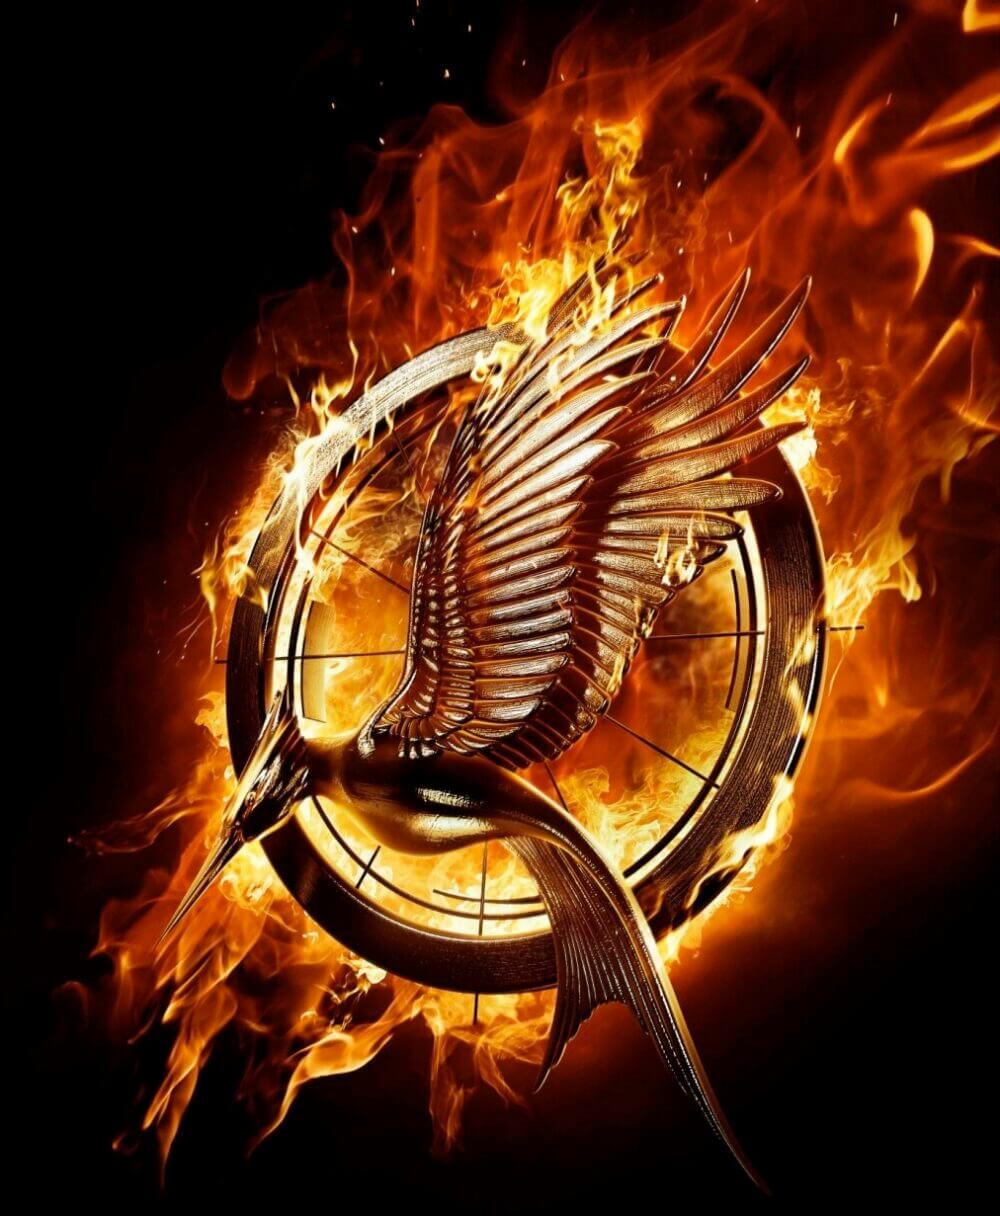 hunger-games-catching-fire-movie-poster